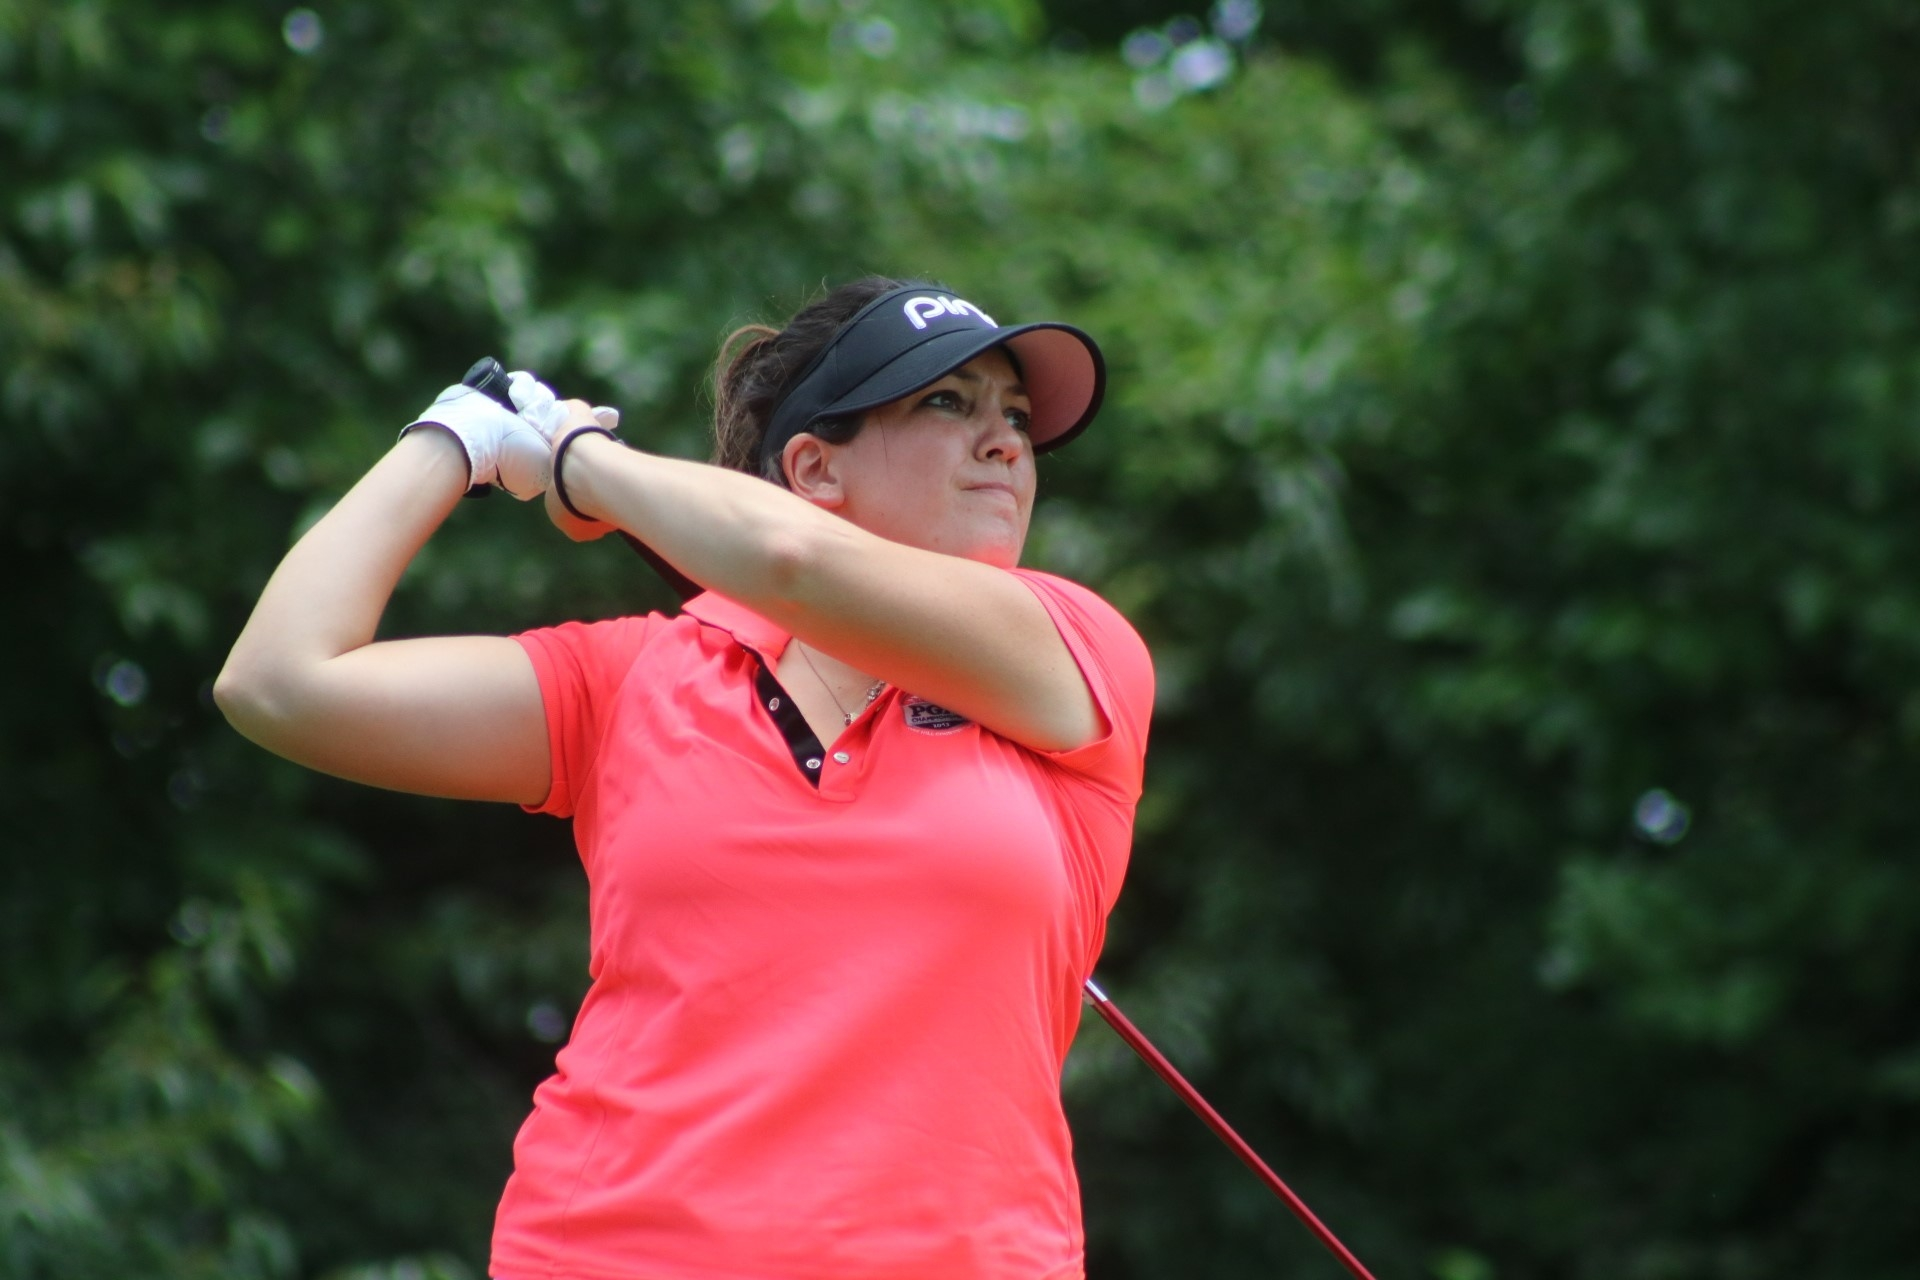 Potter-Bobb Wins First IWGA Event of the Year with Back Nine 33